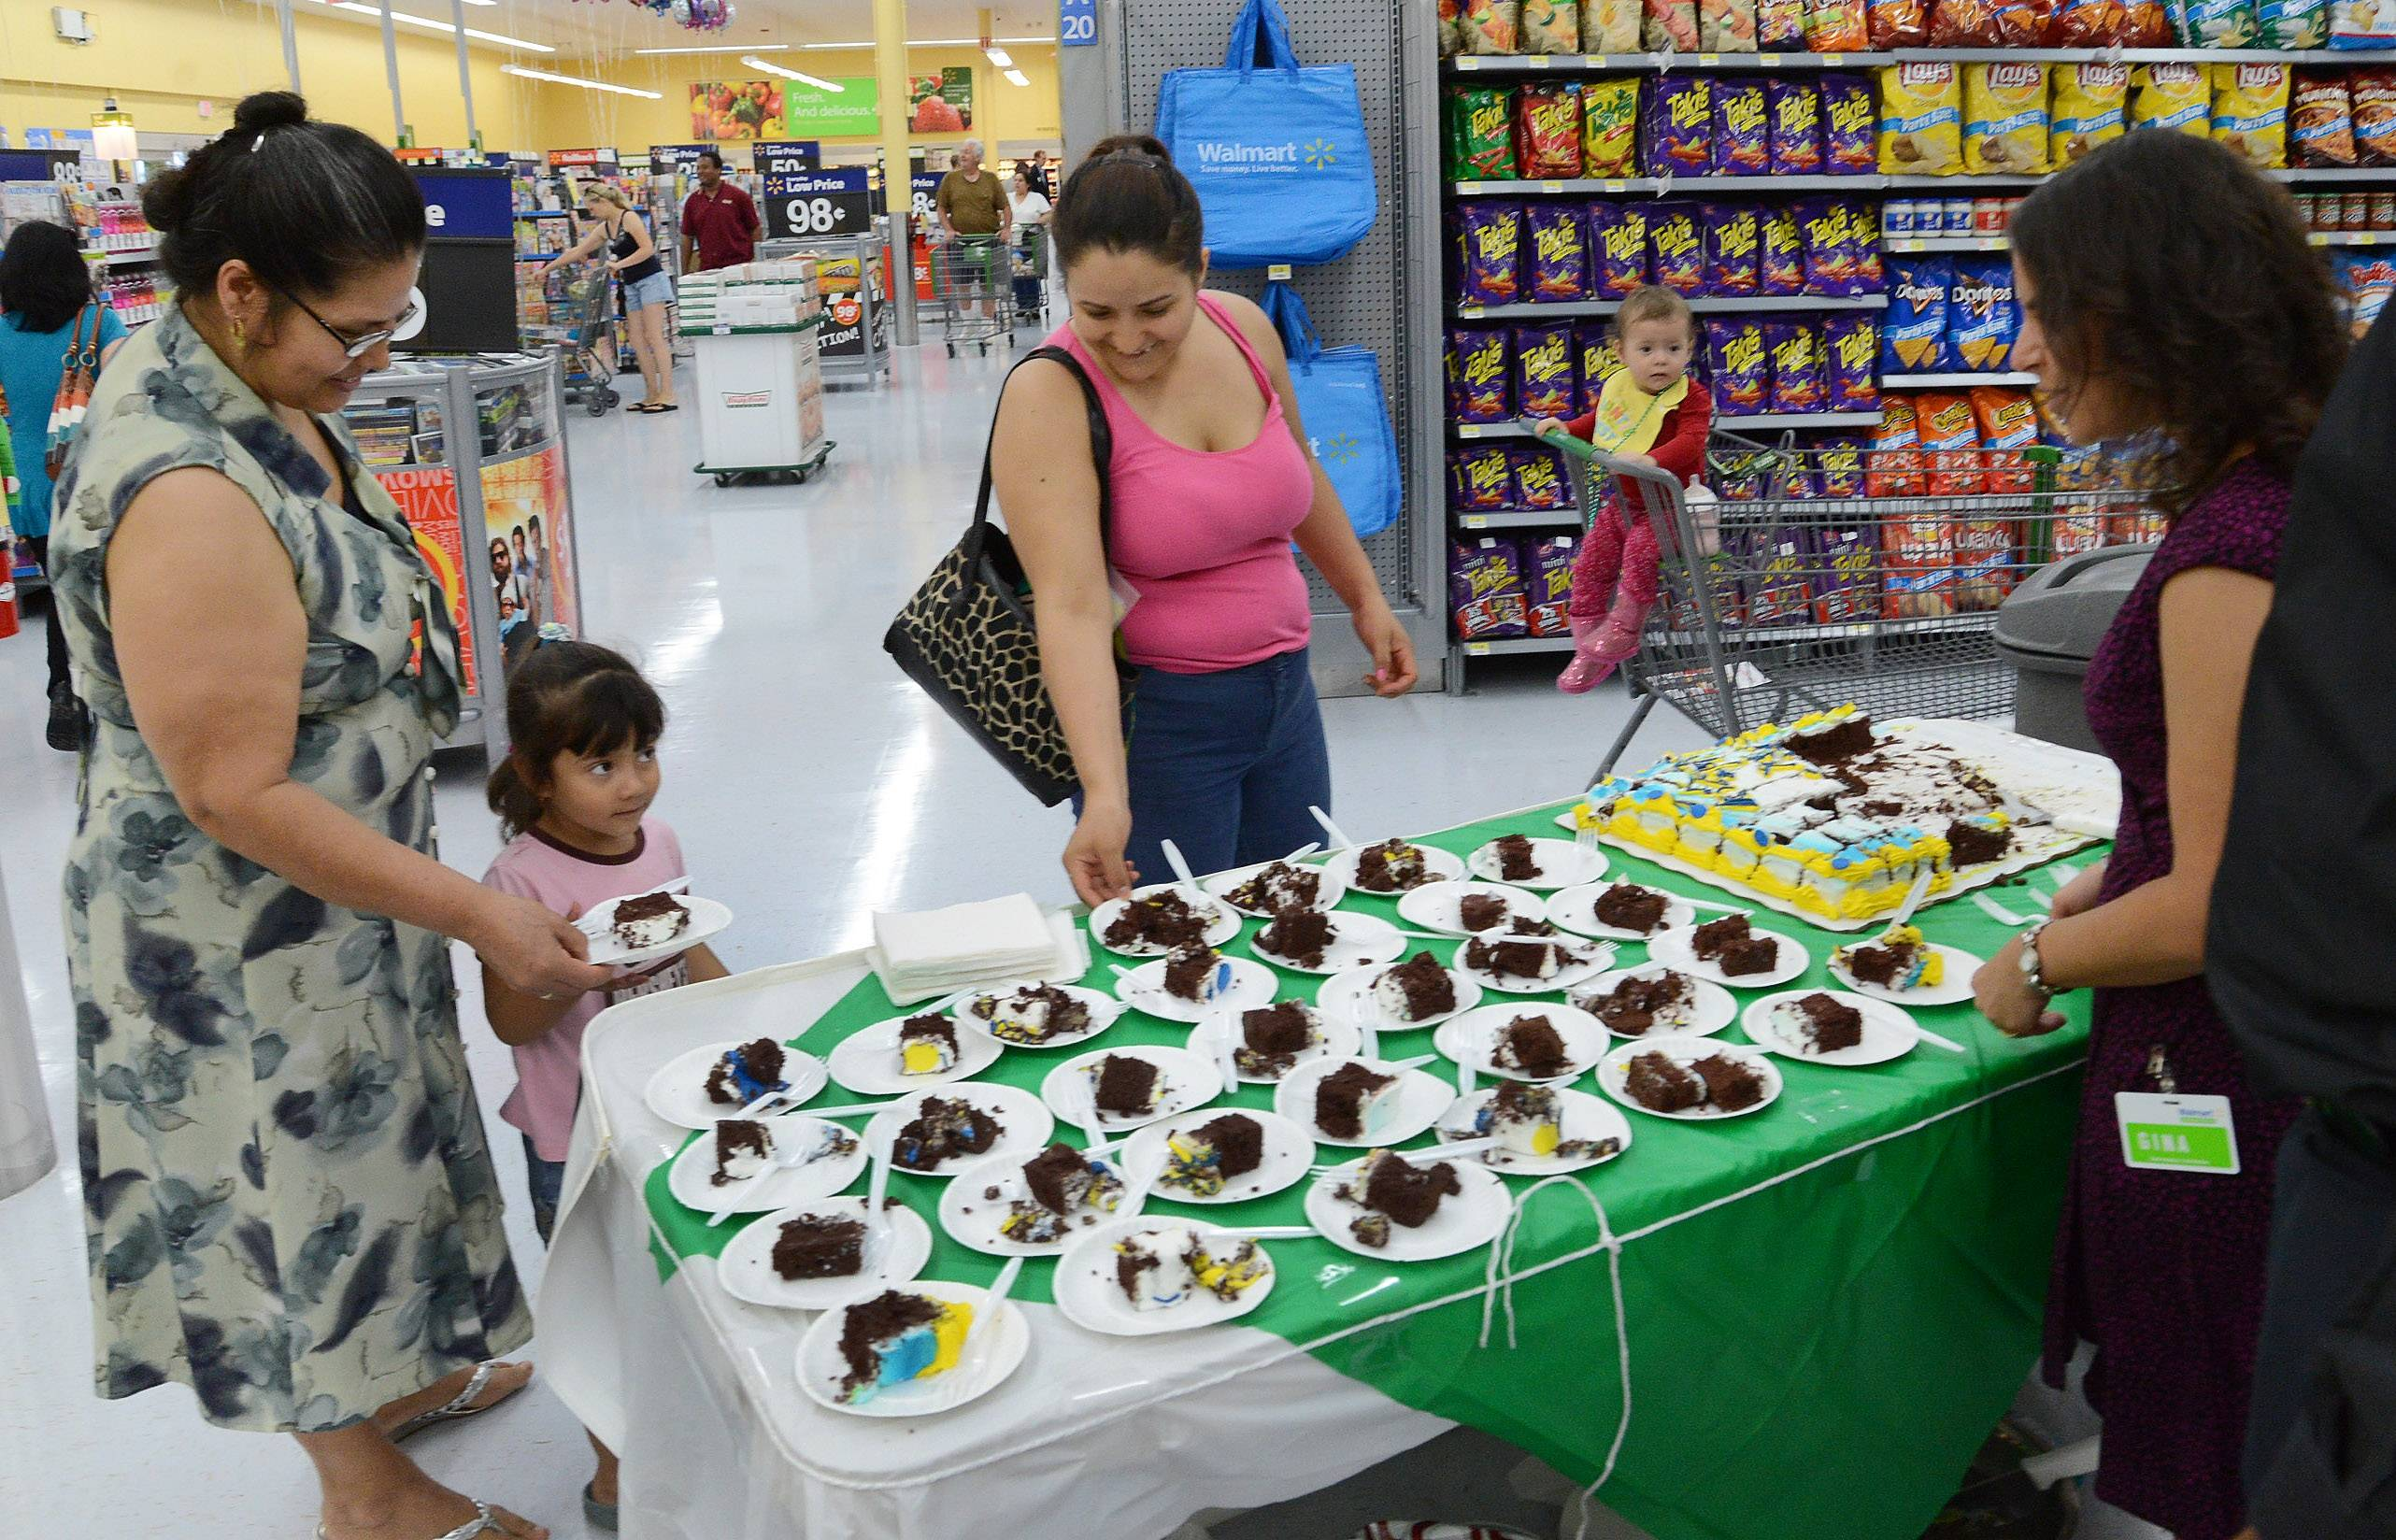 From left, Des Plaines residents Maria Casas, 4-year-old Dana Casas, Susana Casas and 1-year-old Martha Casas sample cake provided by Gina Thunstedt, far right, of the Dr Pepper Snapple Group, during the grand opening of the new Walmart Neighborhood Market in Des Plaines.